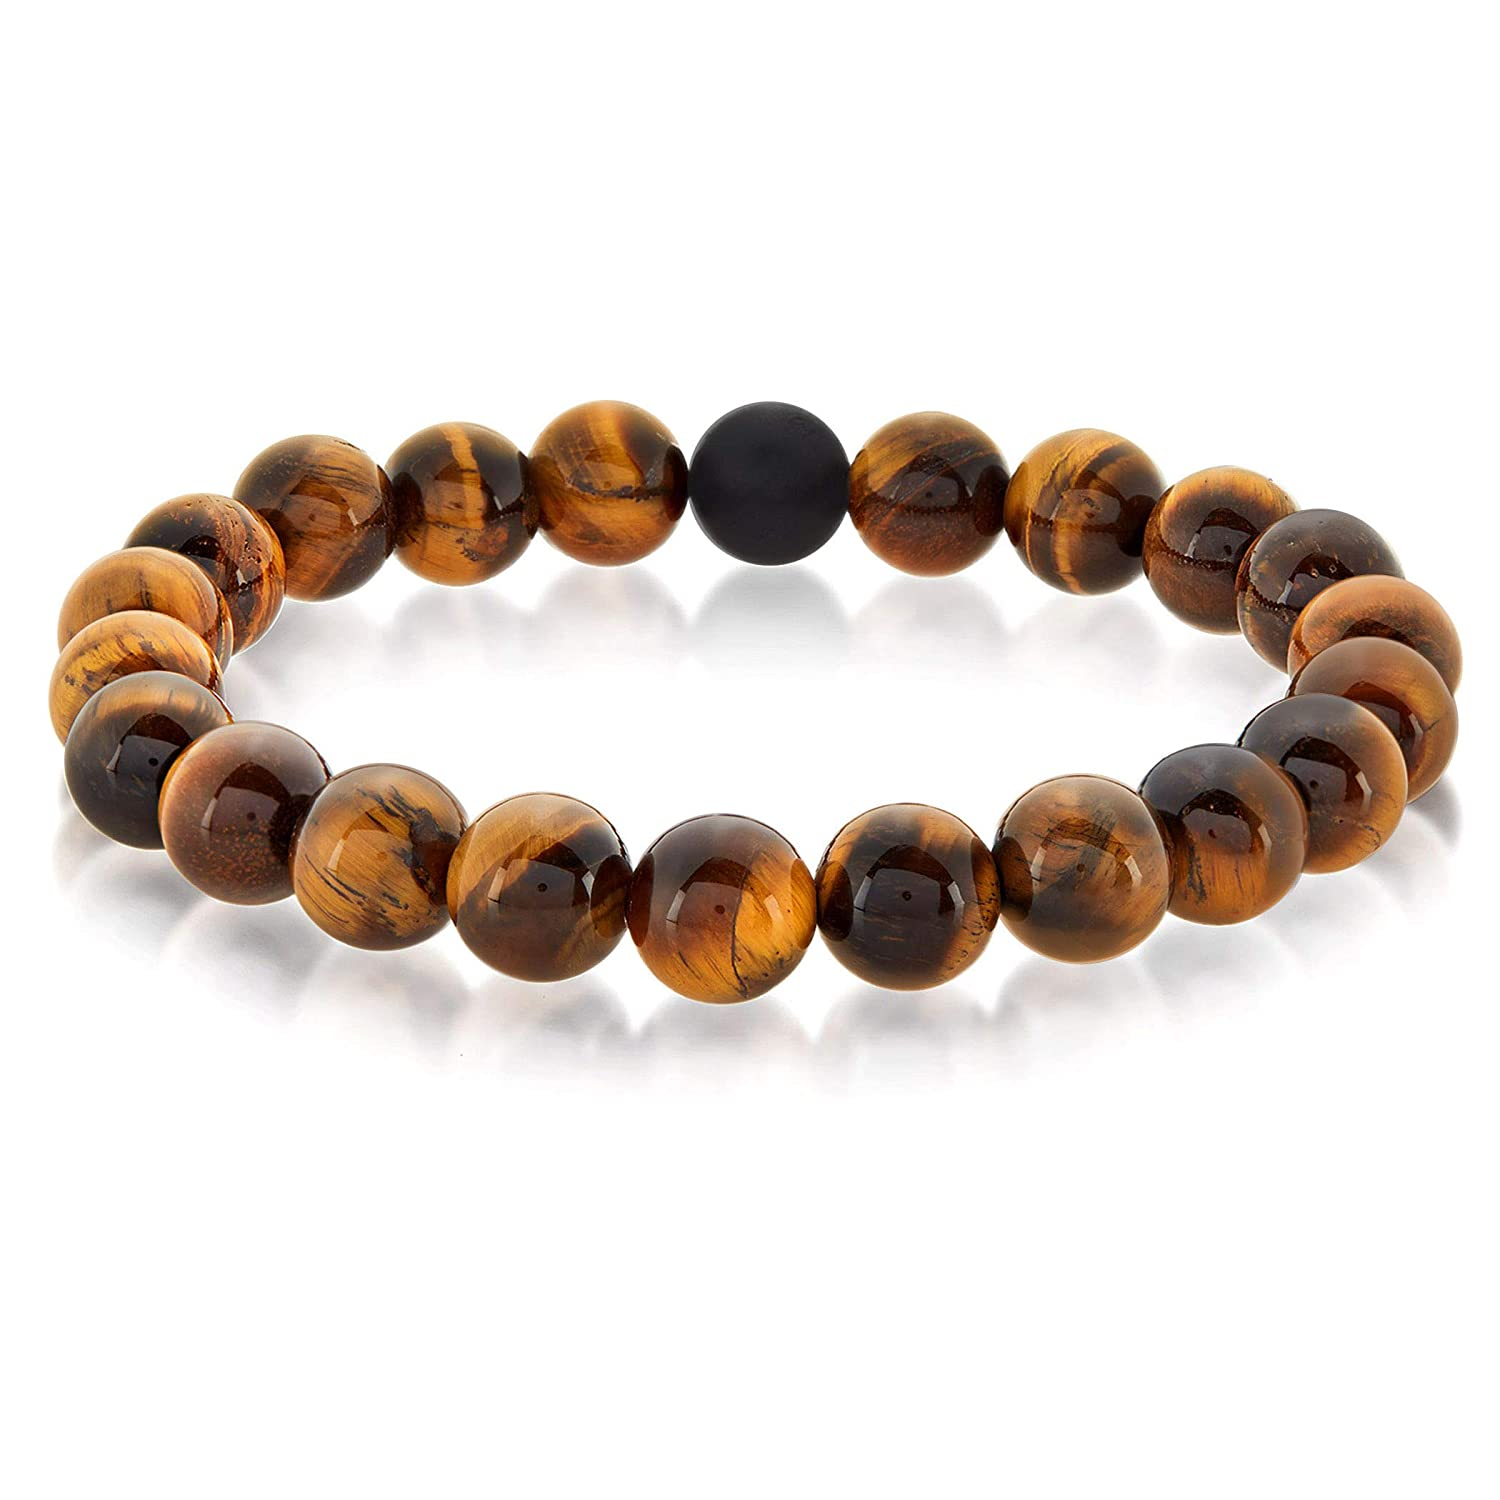 West Coast Jewelry Crucible Men/'s Slip-on Natural Stone Bead Bracelet Elastic Stretch Healing Chakra 10mm